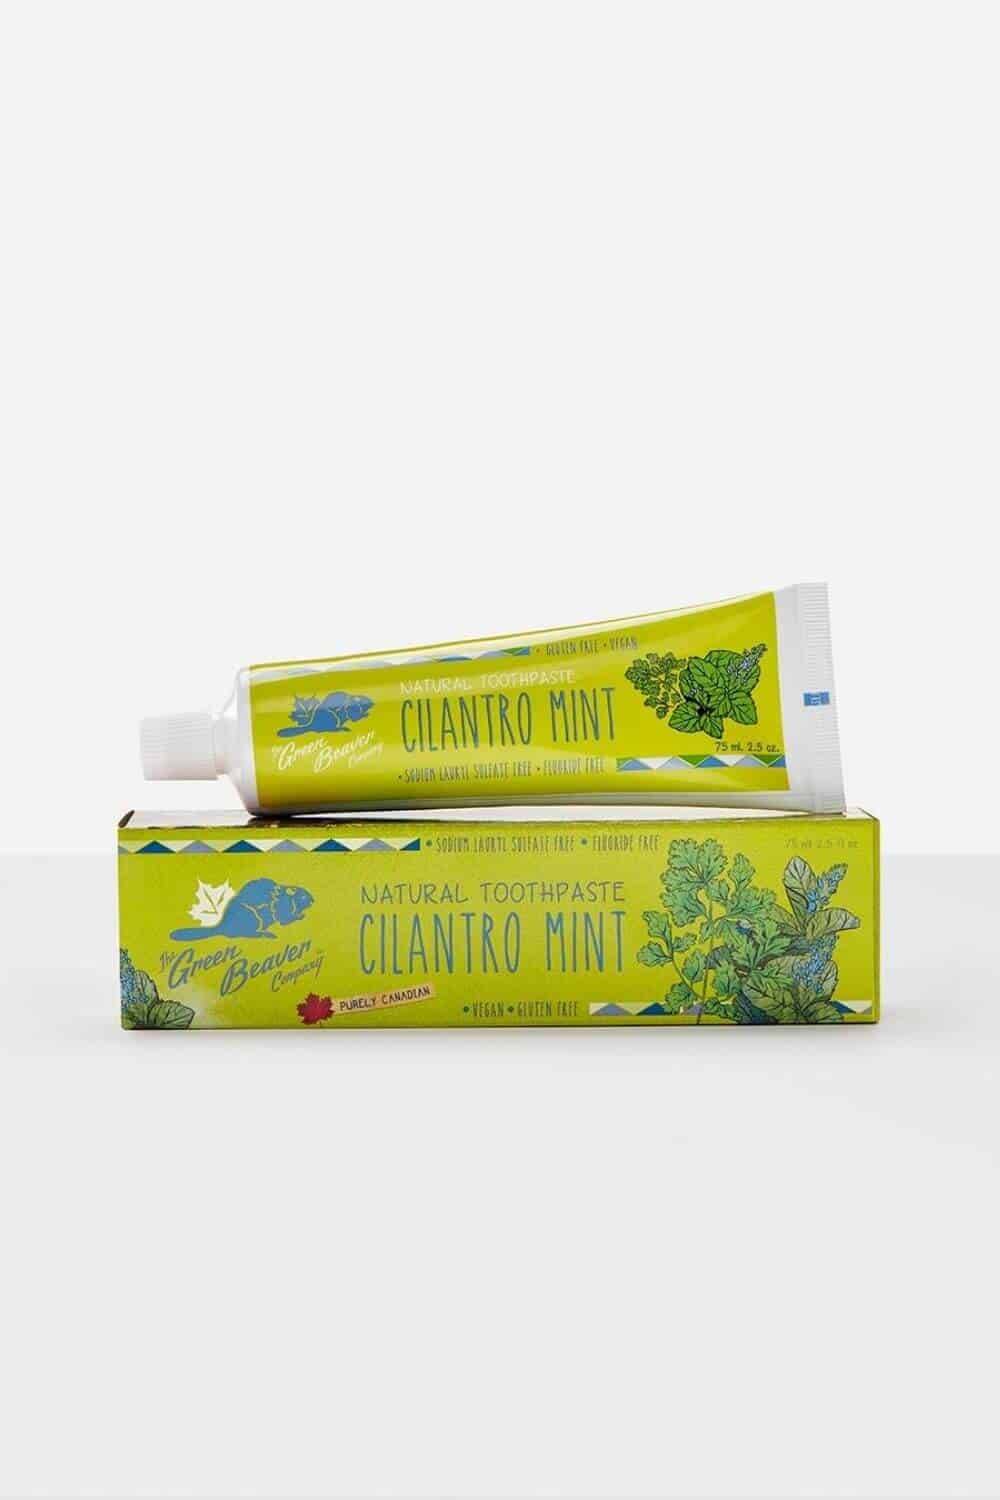 Toothpaste is probably the most regularly used body care product around which is why it was one of the first products we scrutinized for sustainable, cruelty free toothpaste alternatives... Image by The Green Beaver Company #crueltyfreetoothpaste #sustainablejungle